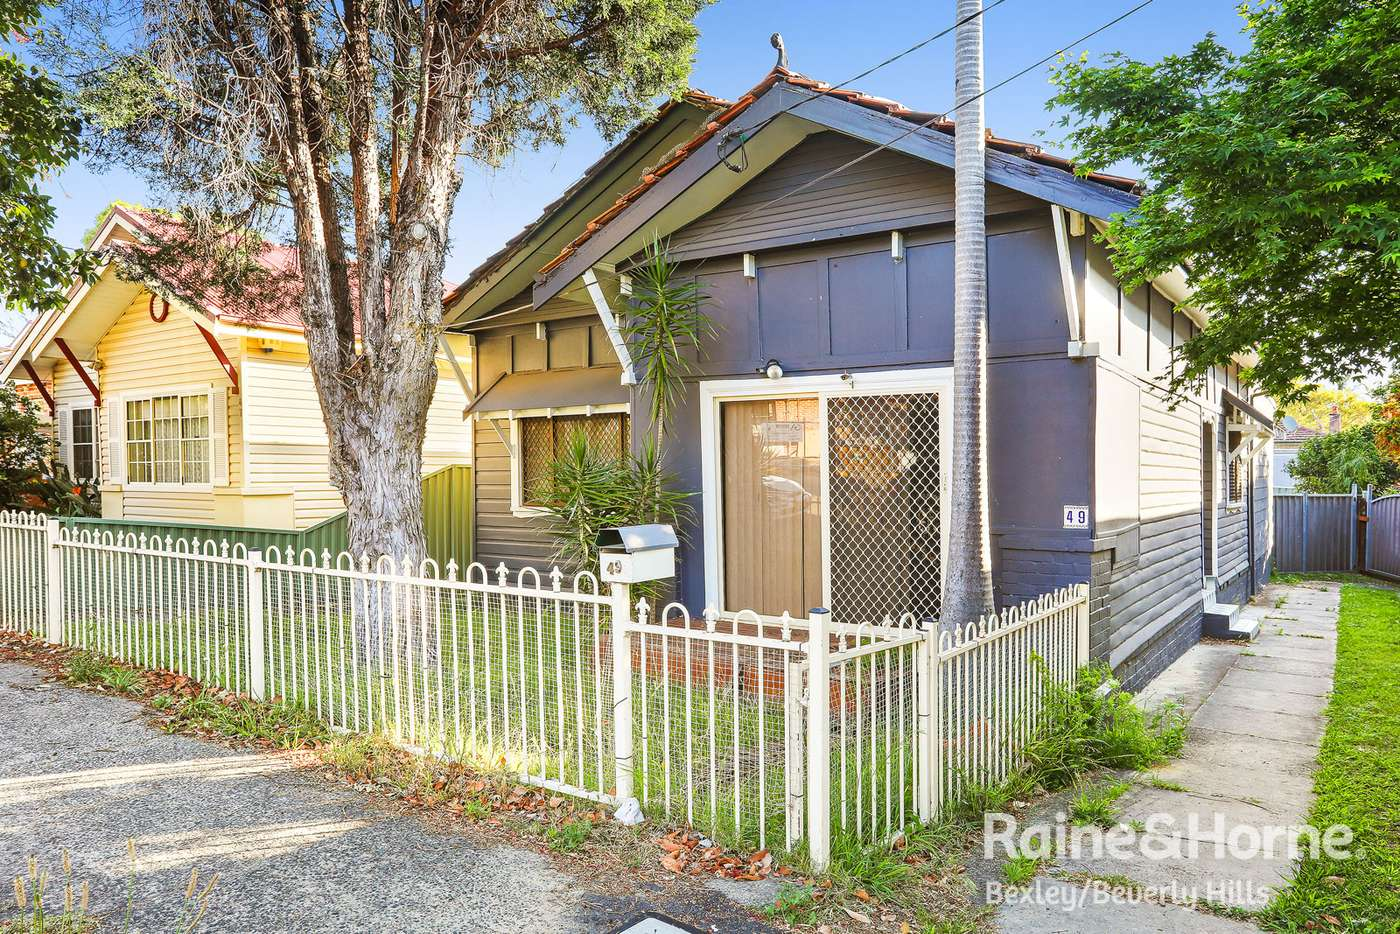 Main view of Homely house listing, 49 Broadford Street, Bexley, NSW 2207